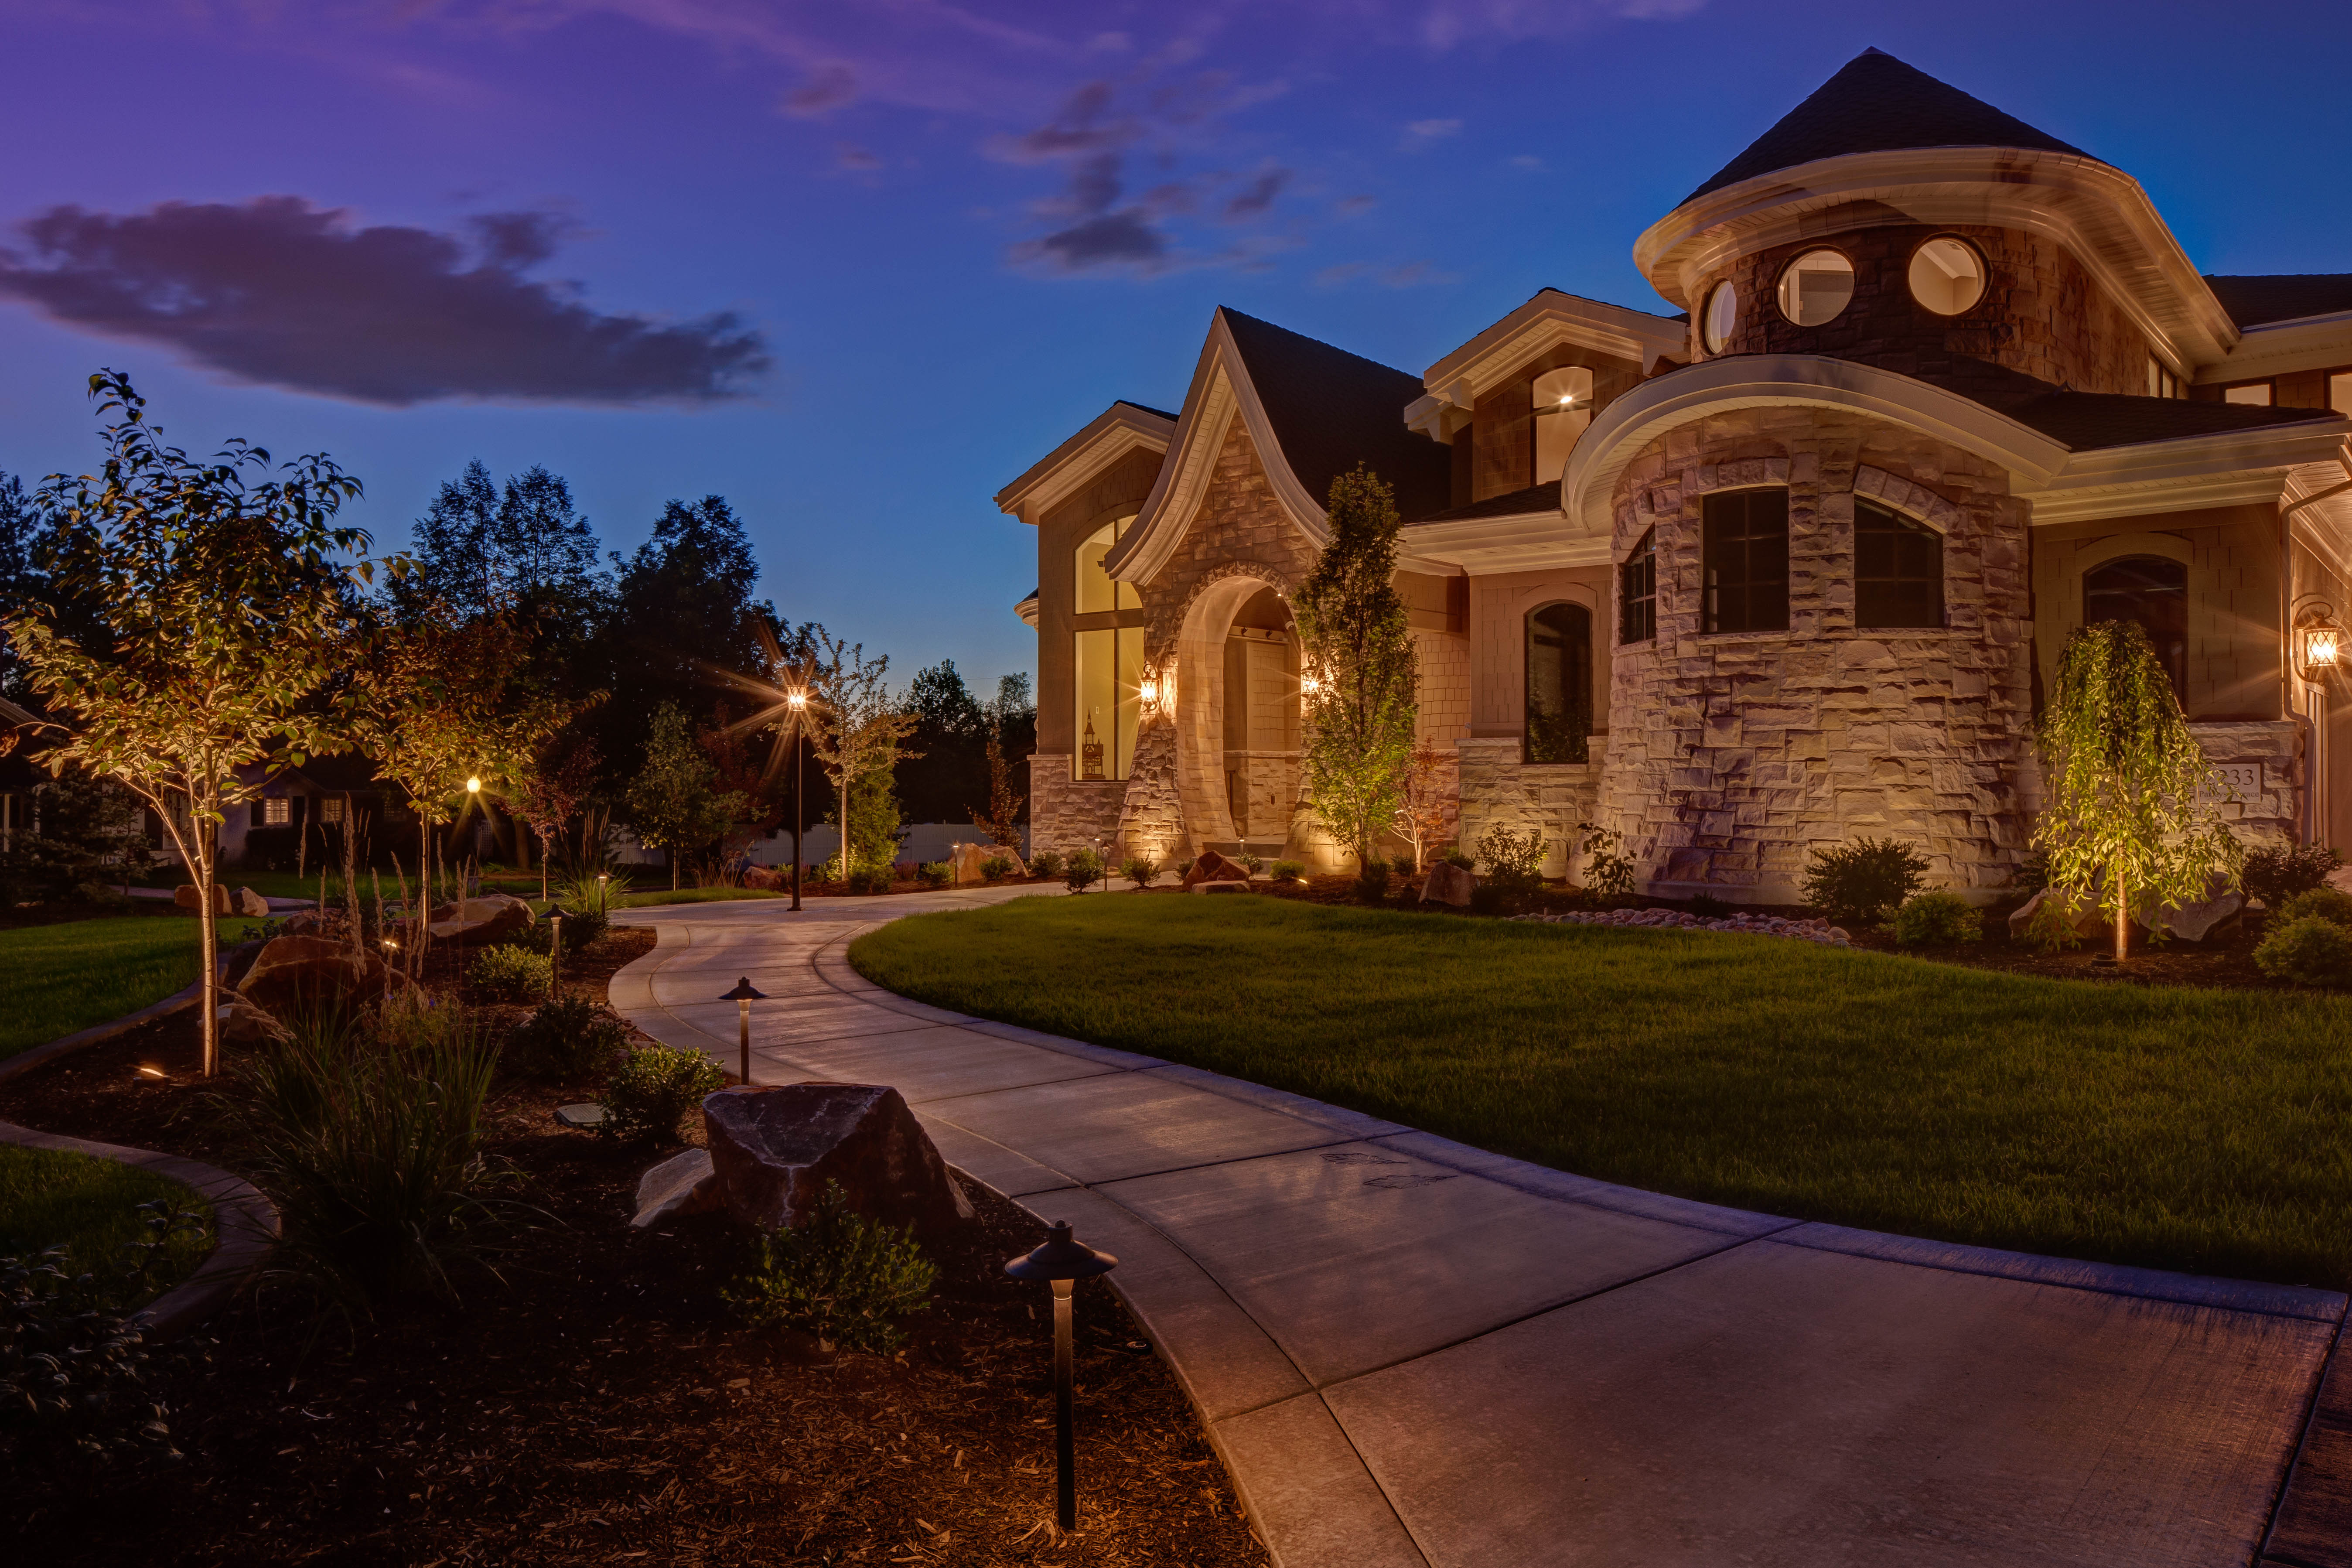 Pathway Lighting Design Ideas Outdoor Residential Security Lighting Ideas And Pictures